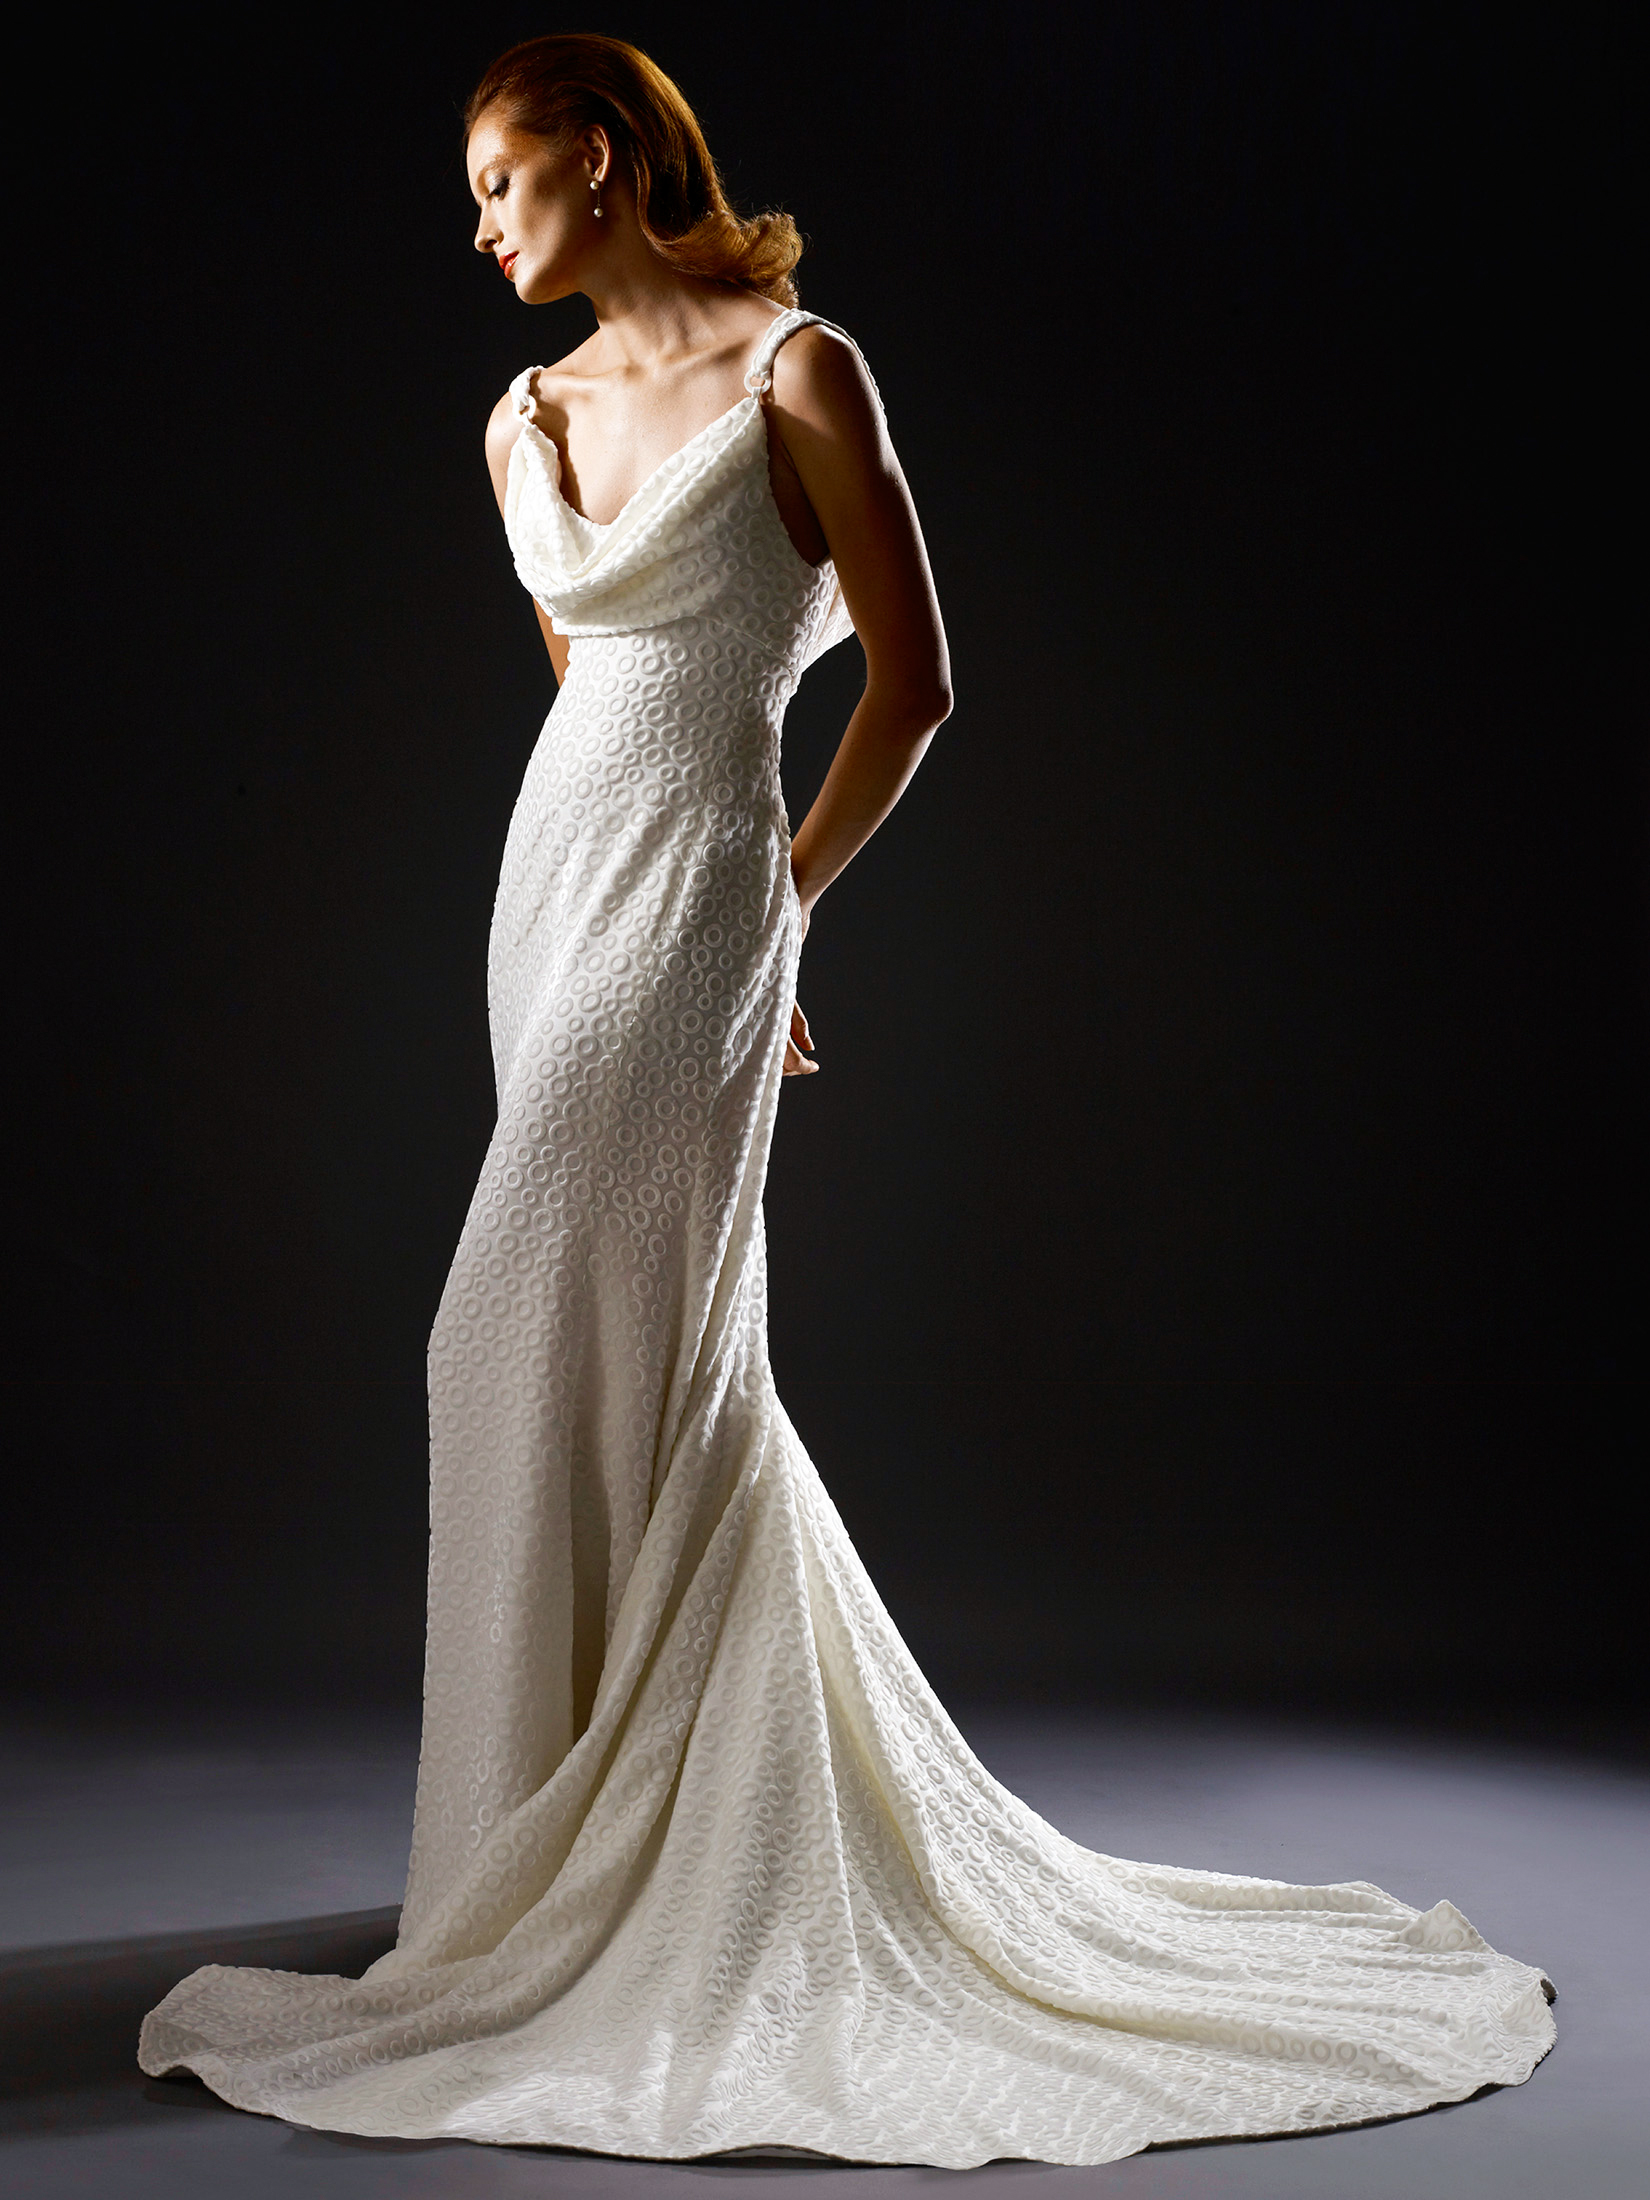 steven birnbaum fall 2019 sheath spaghetti strap wedding dress